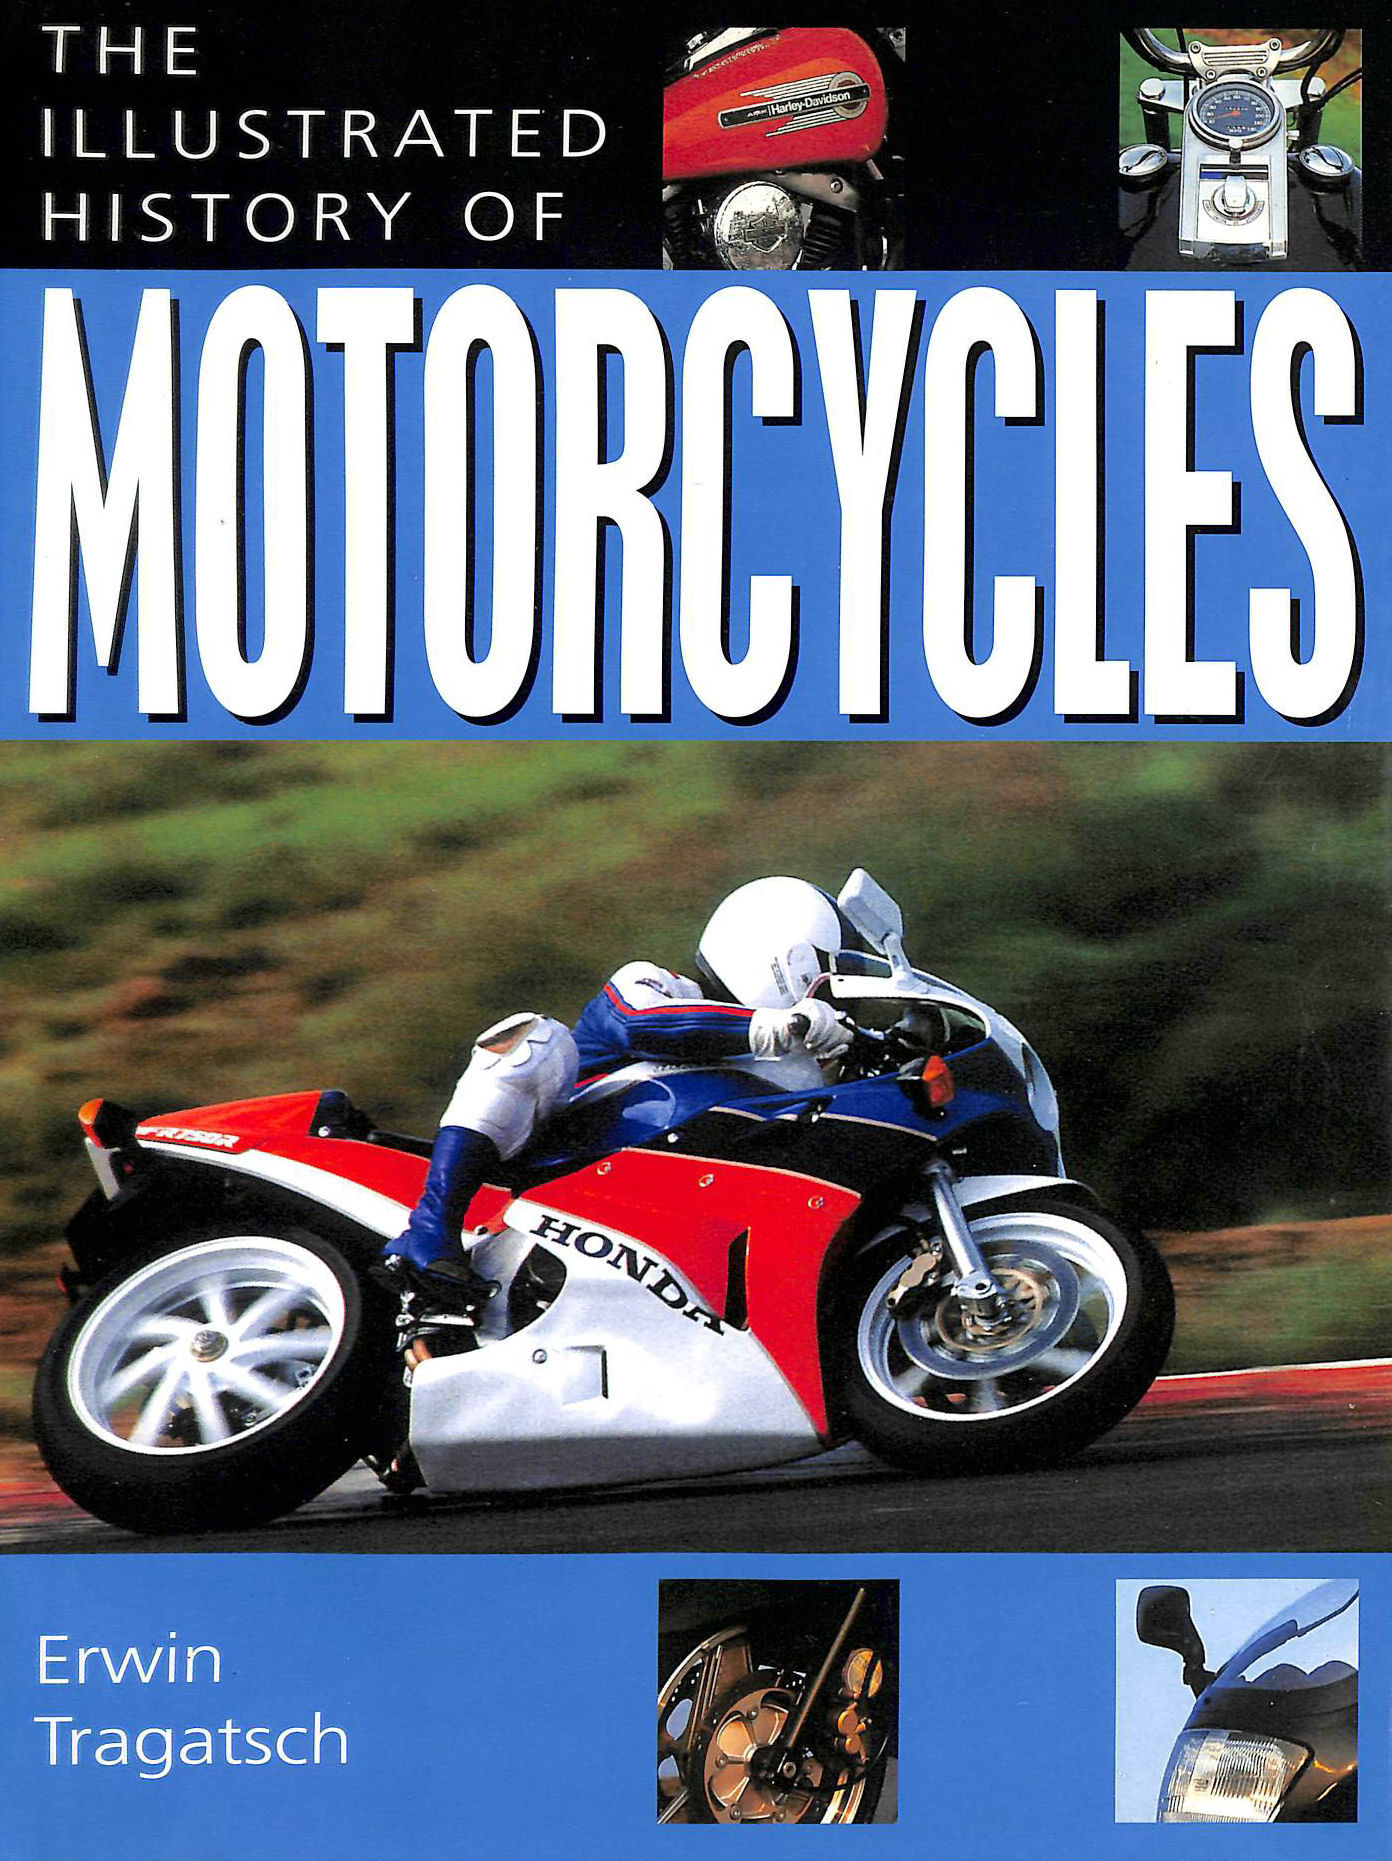 Image for The Illustrated History Of Motorcycles (MOTORCYCLES)